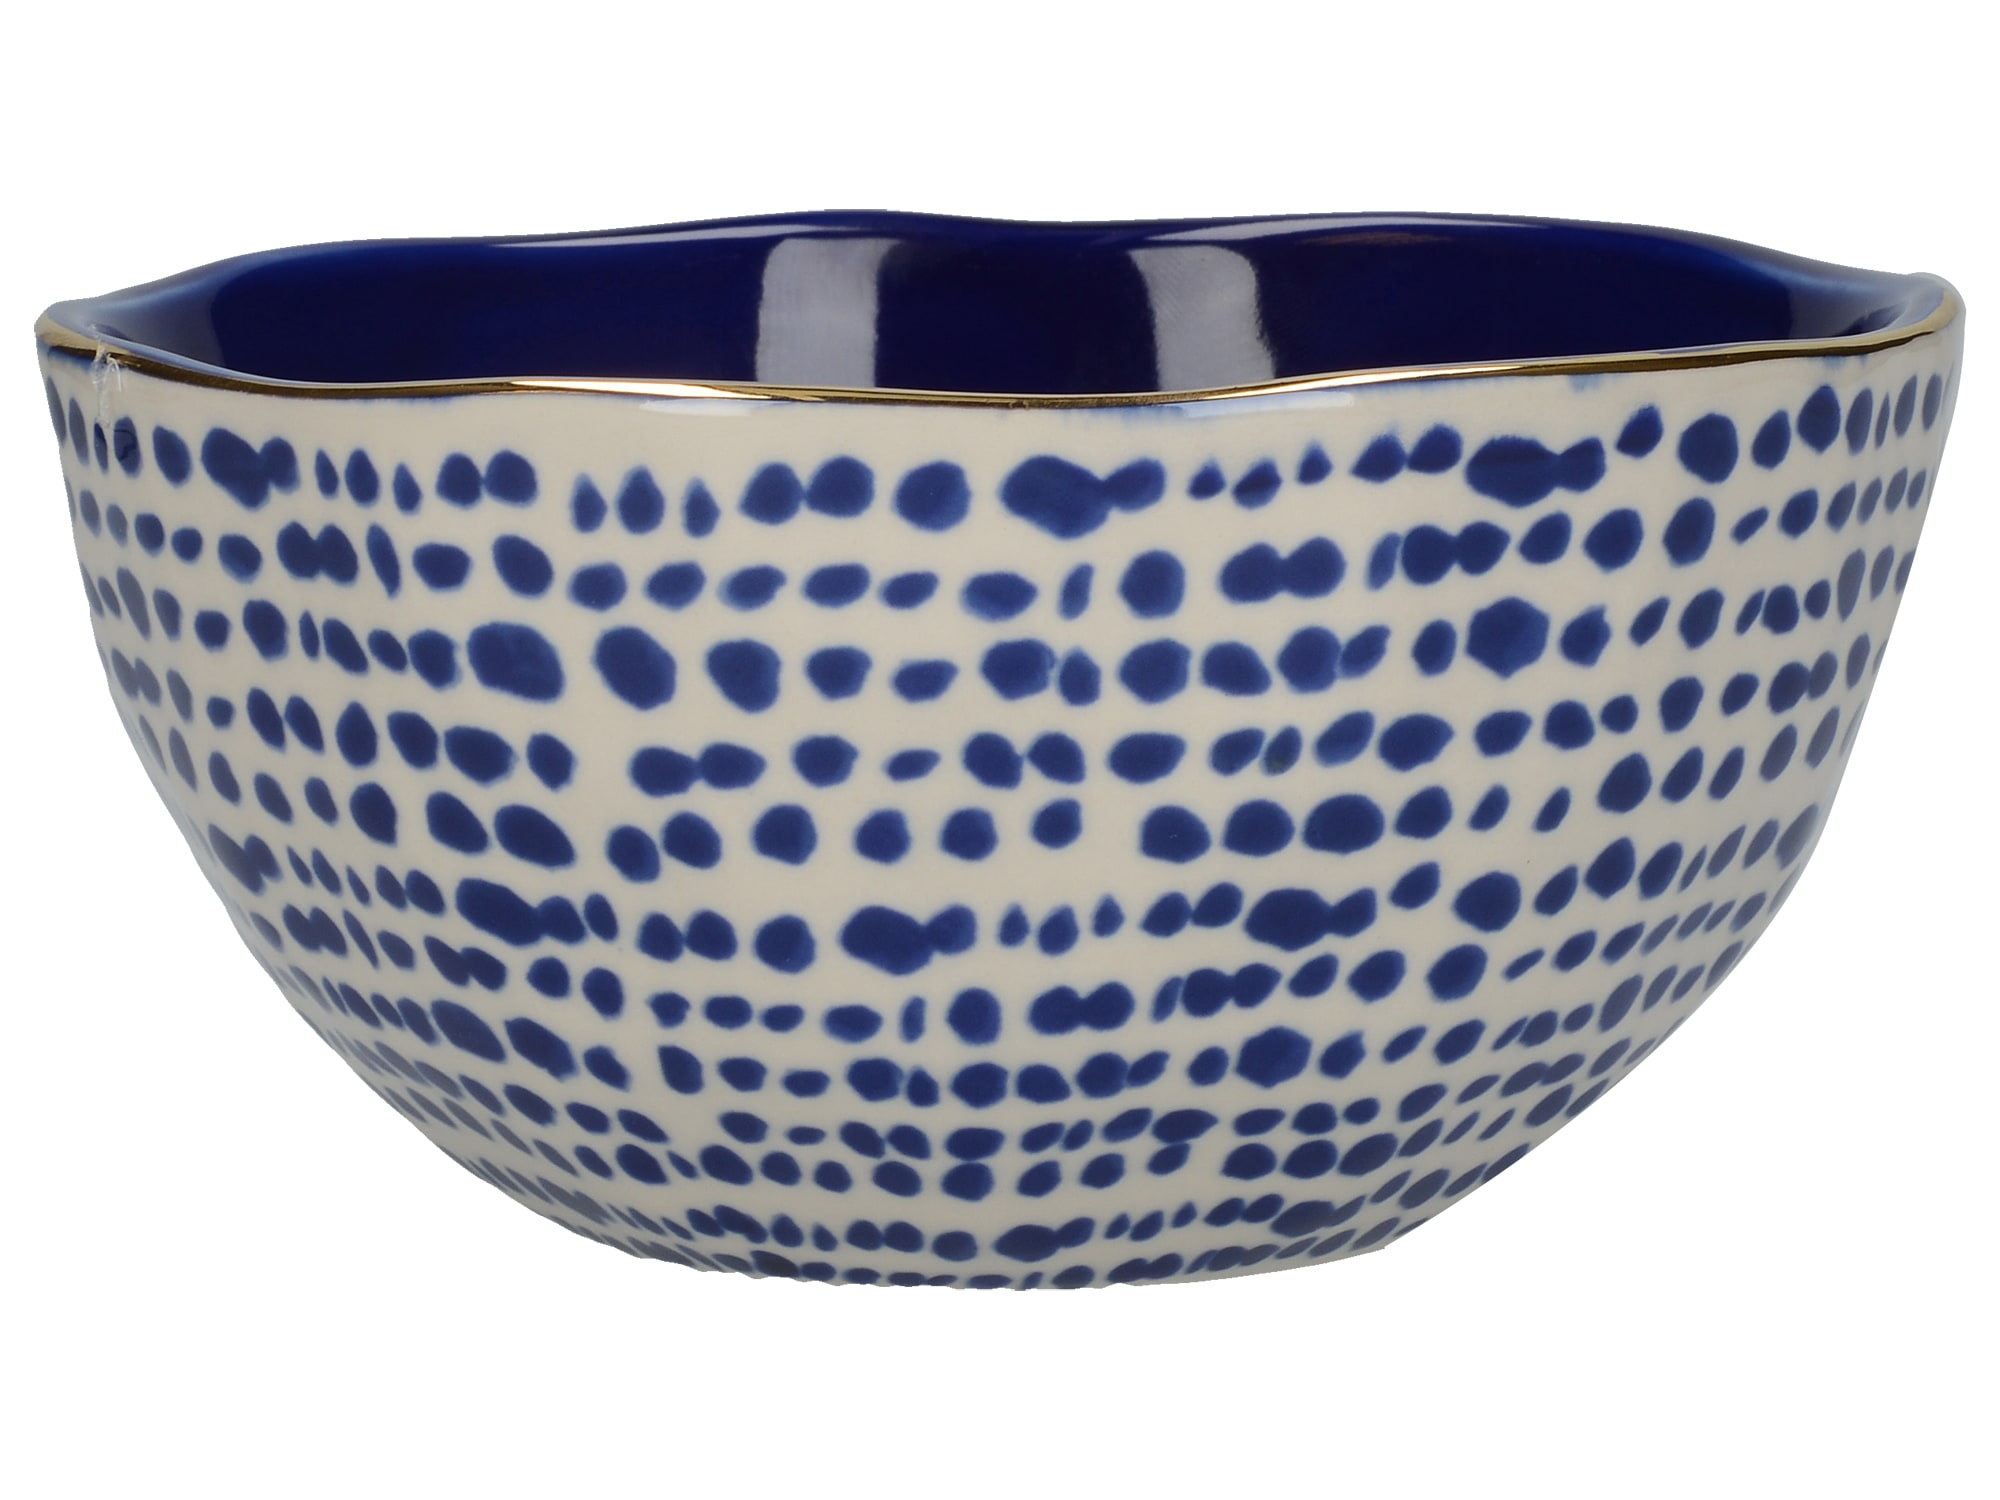 Mikasa Azores Speckle Cereal Bowl